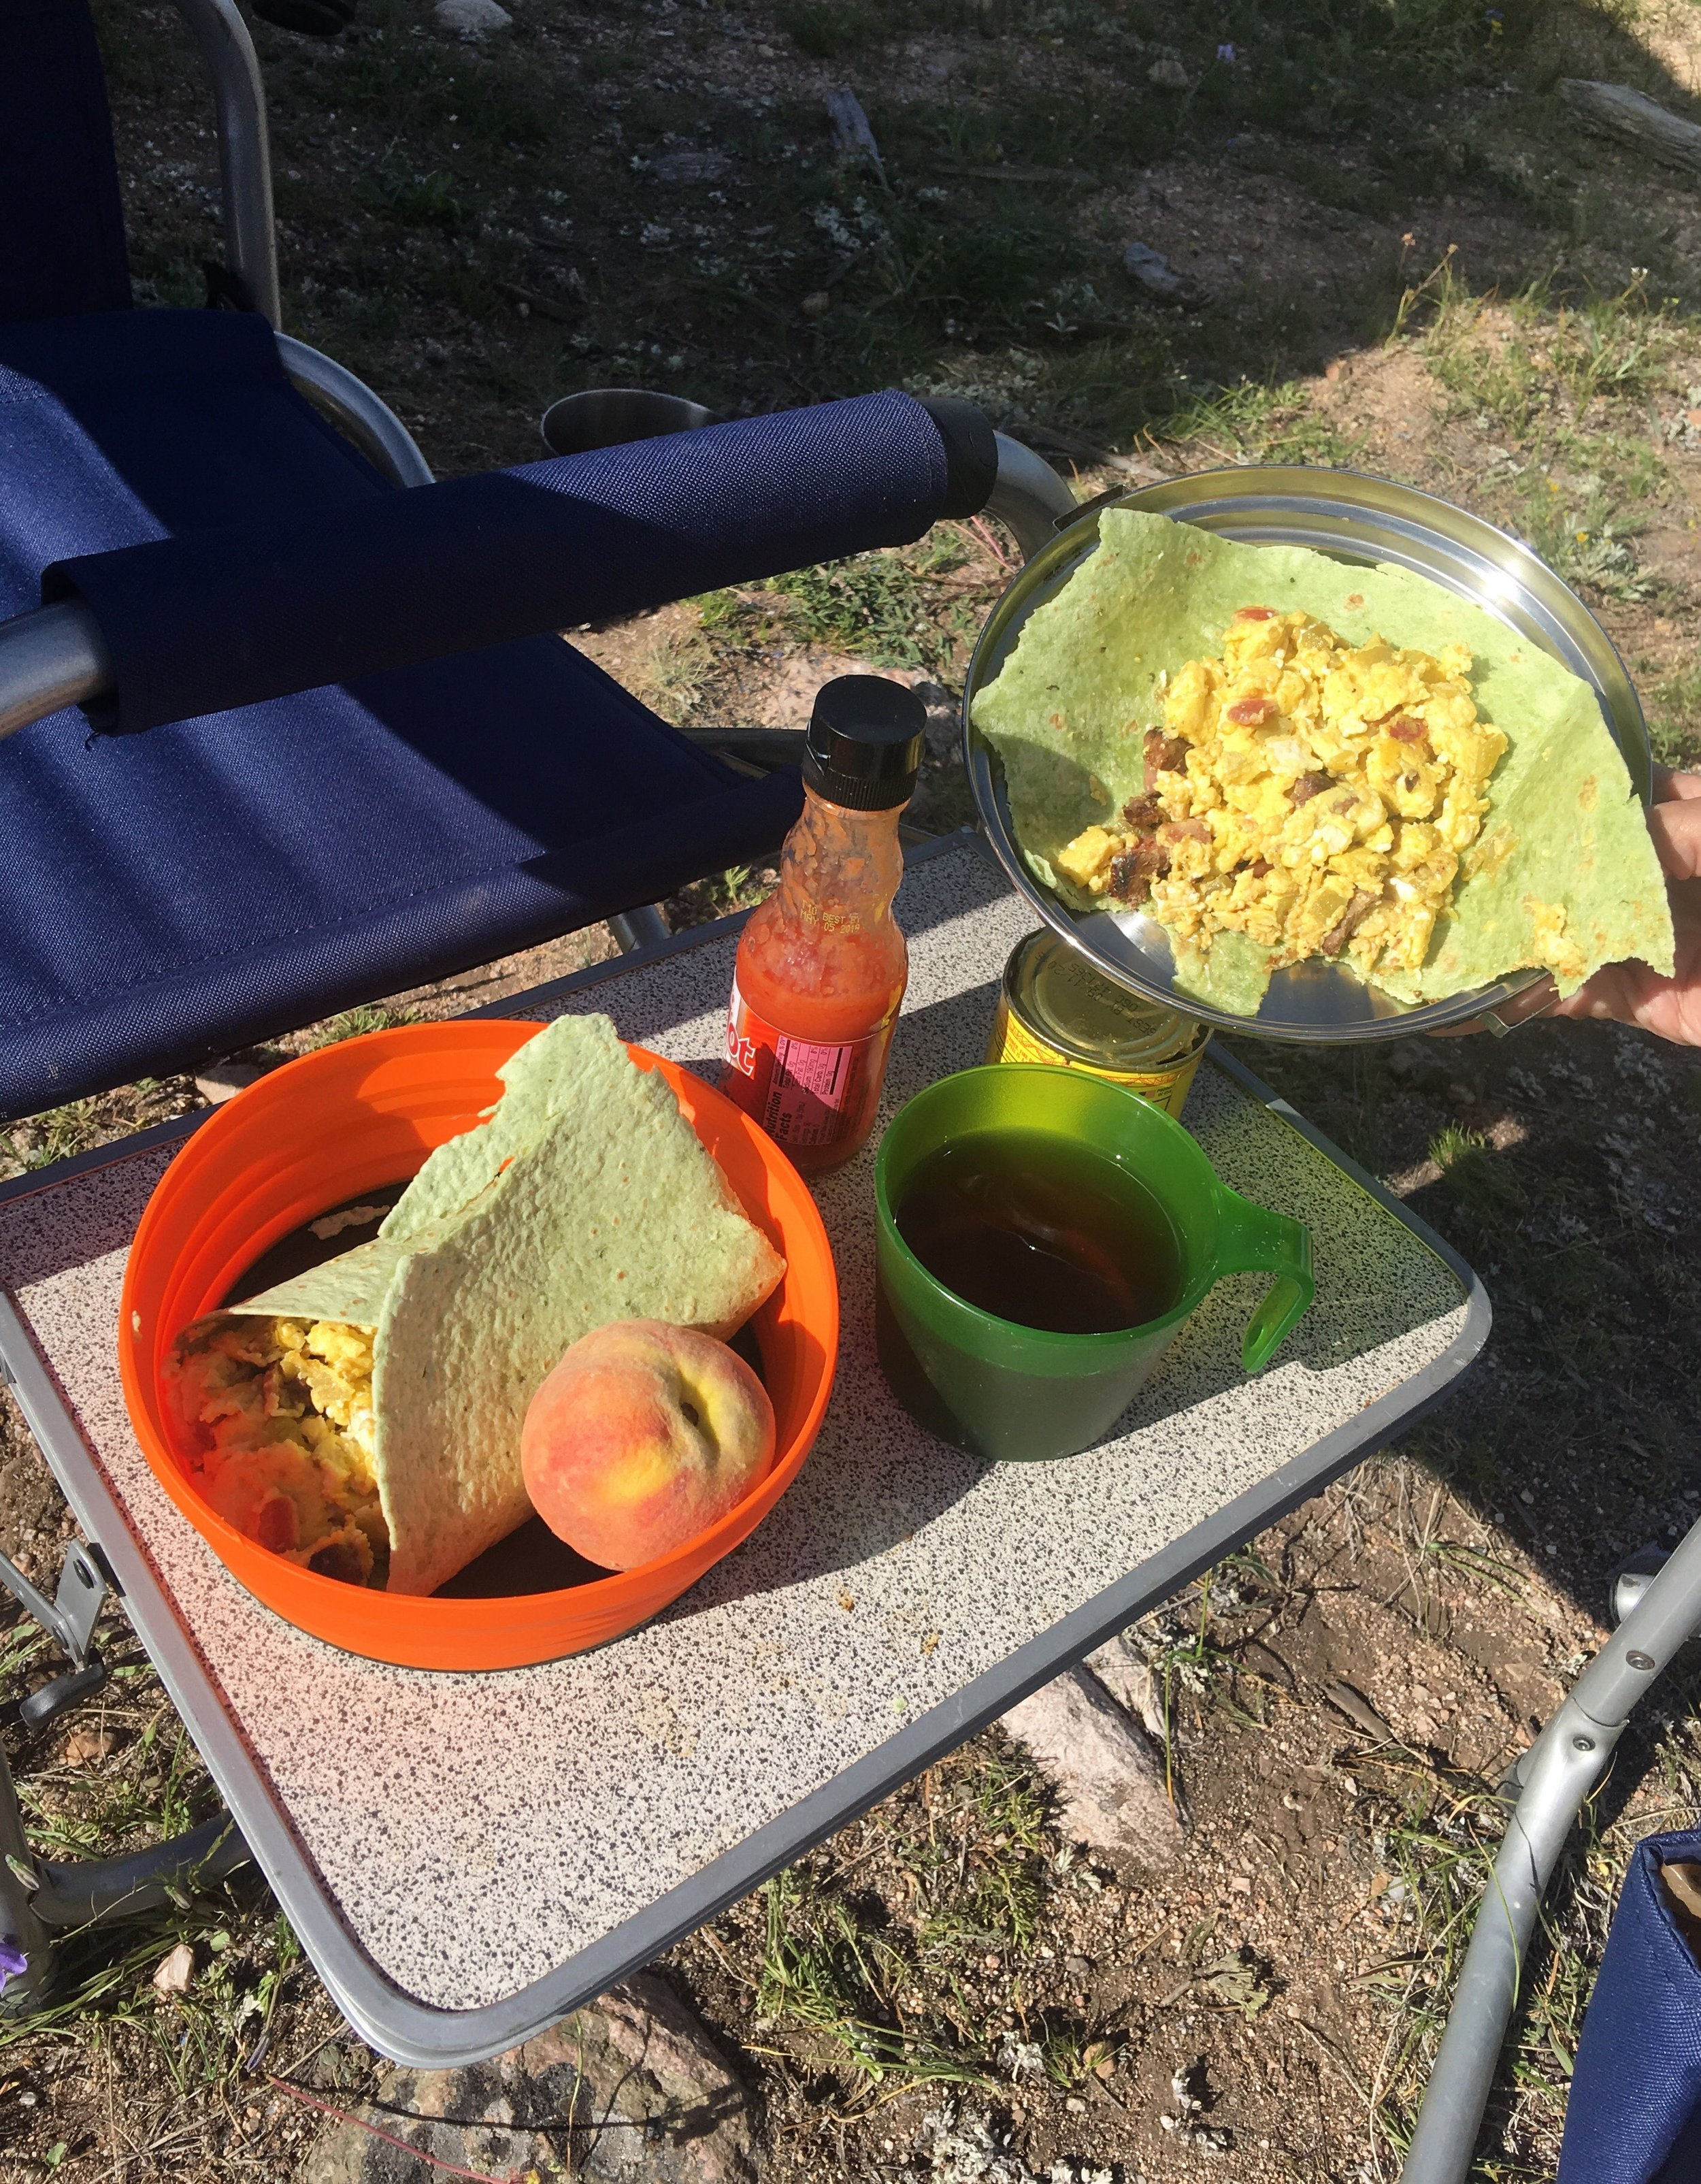 Camp Breakfast: breakfast burritos with eggs, chiles, diced steak and bacon, fresh Colorado Palisades Peaches, tea and coffee to fortify us for the adventures ahead.